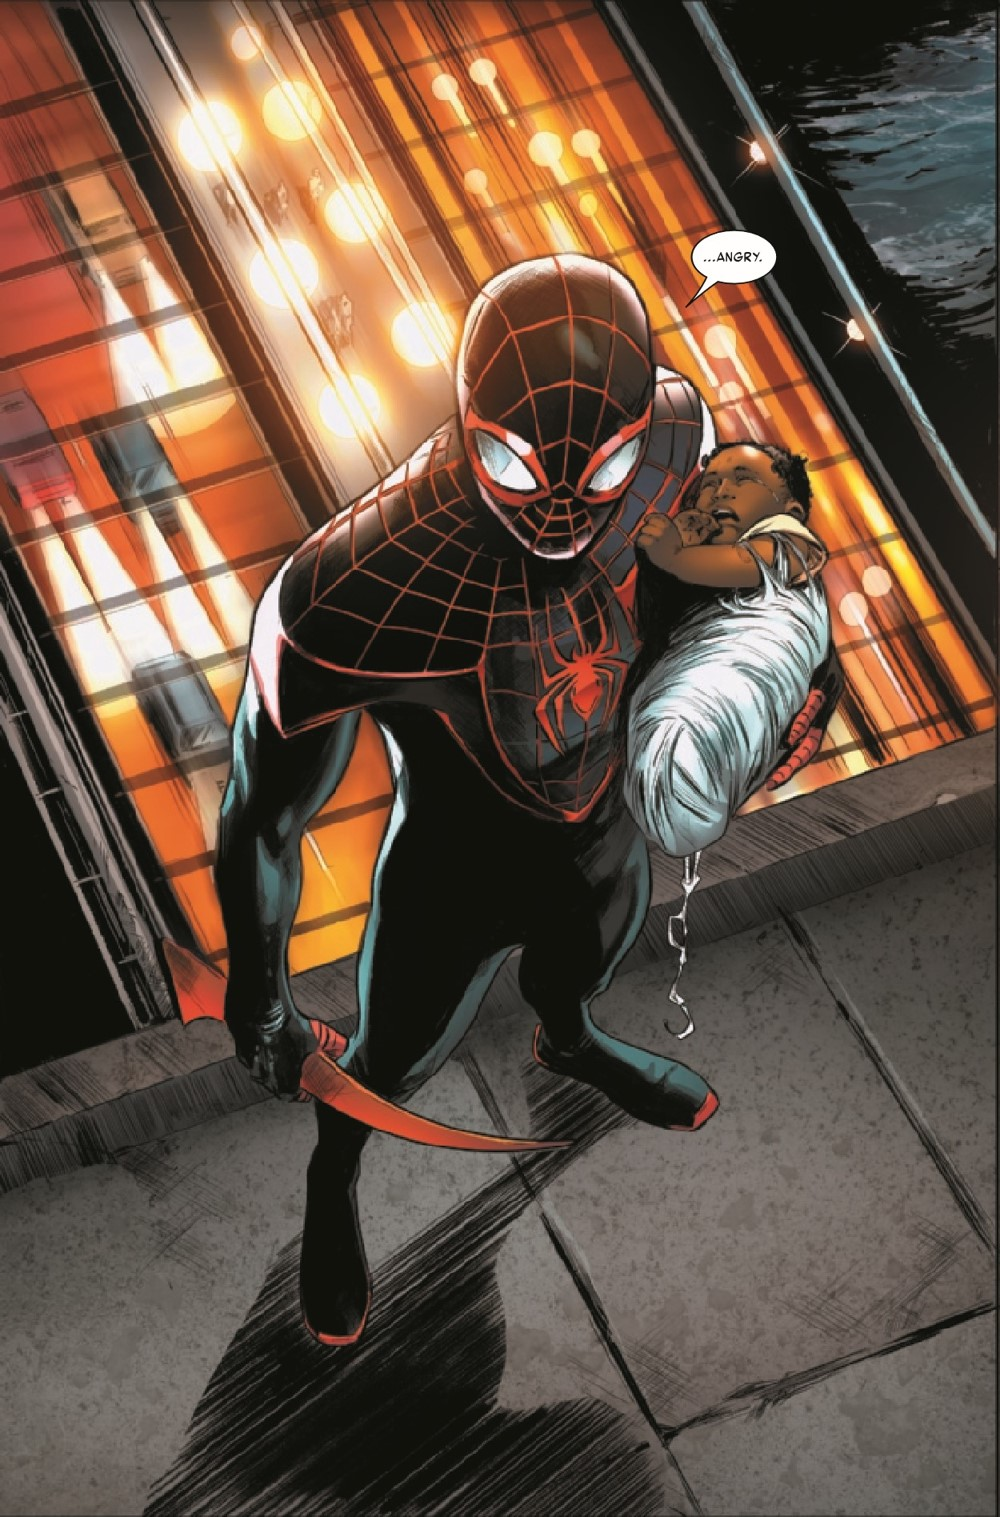 MMSM2018028_Preview-7 ComicList Previews: MILES MORALES SPIDER-MAN #28